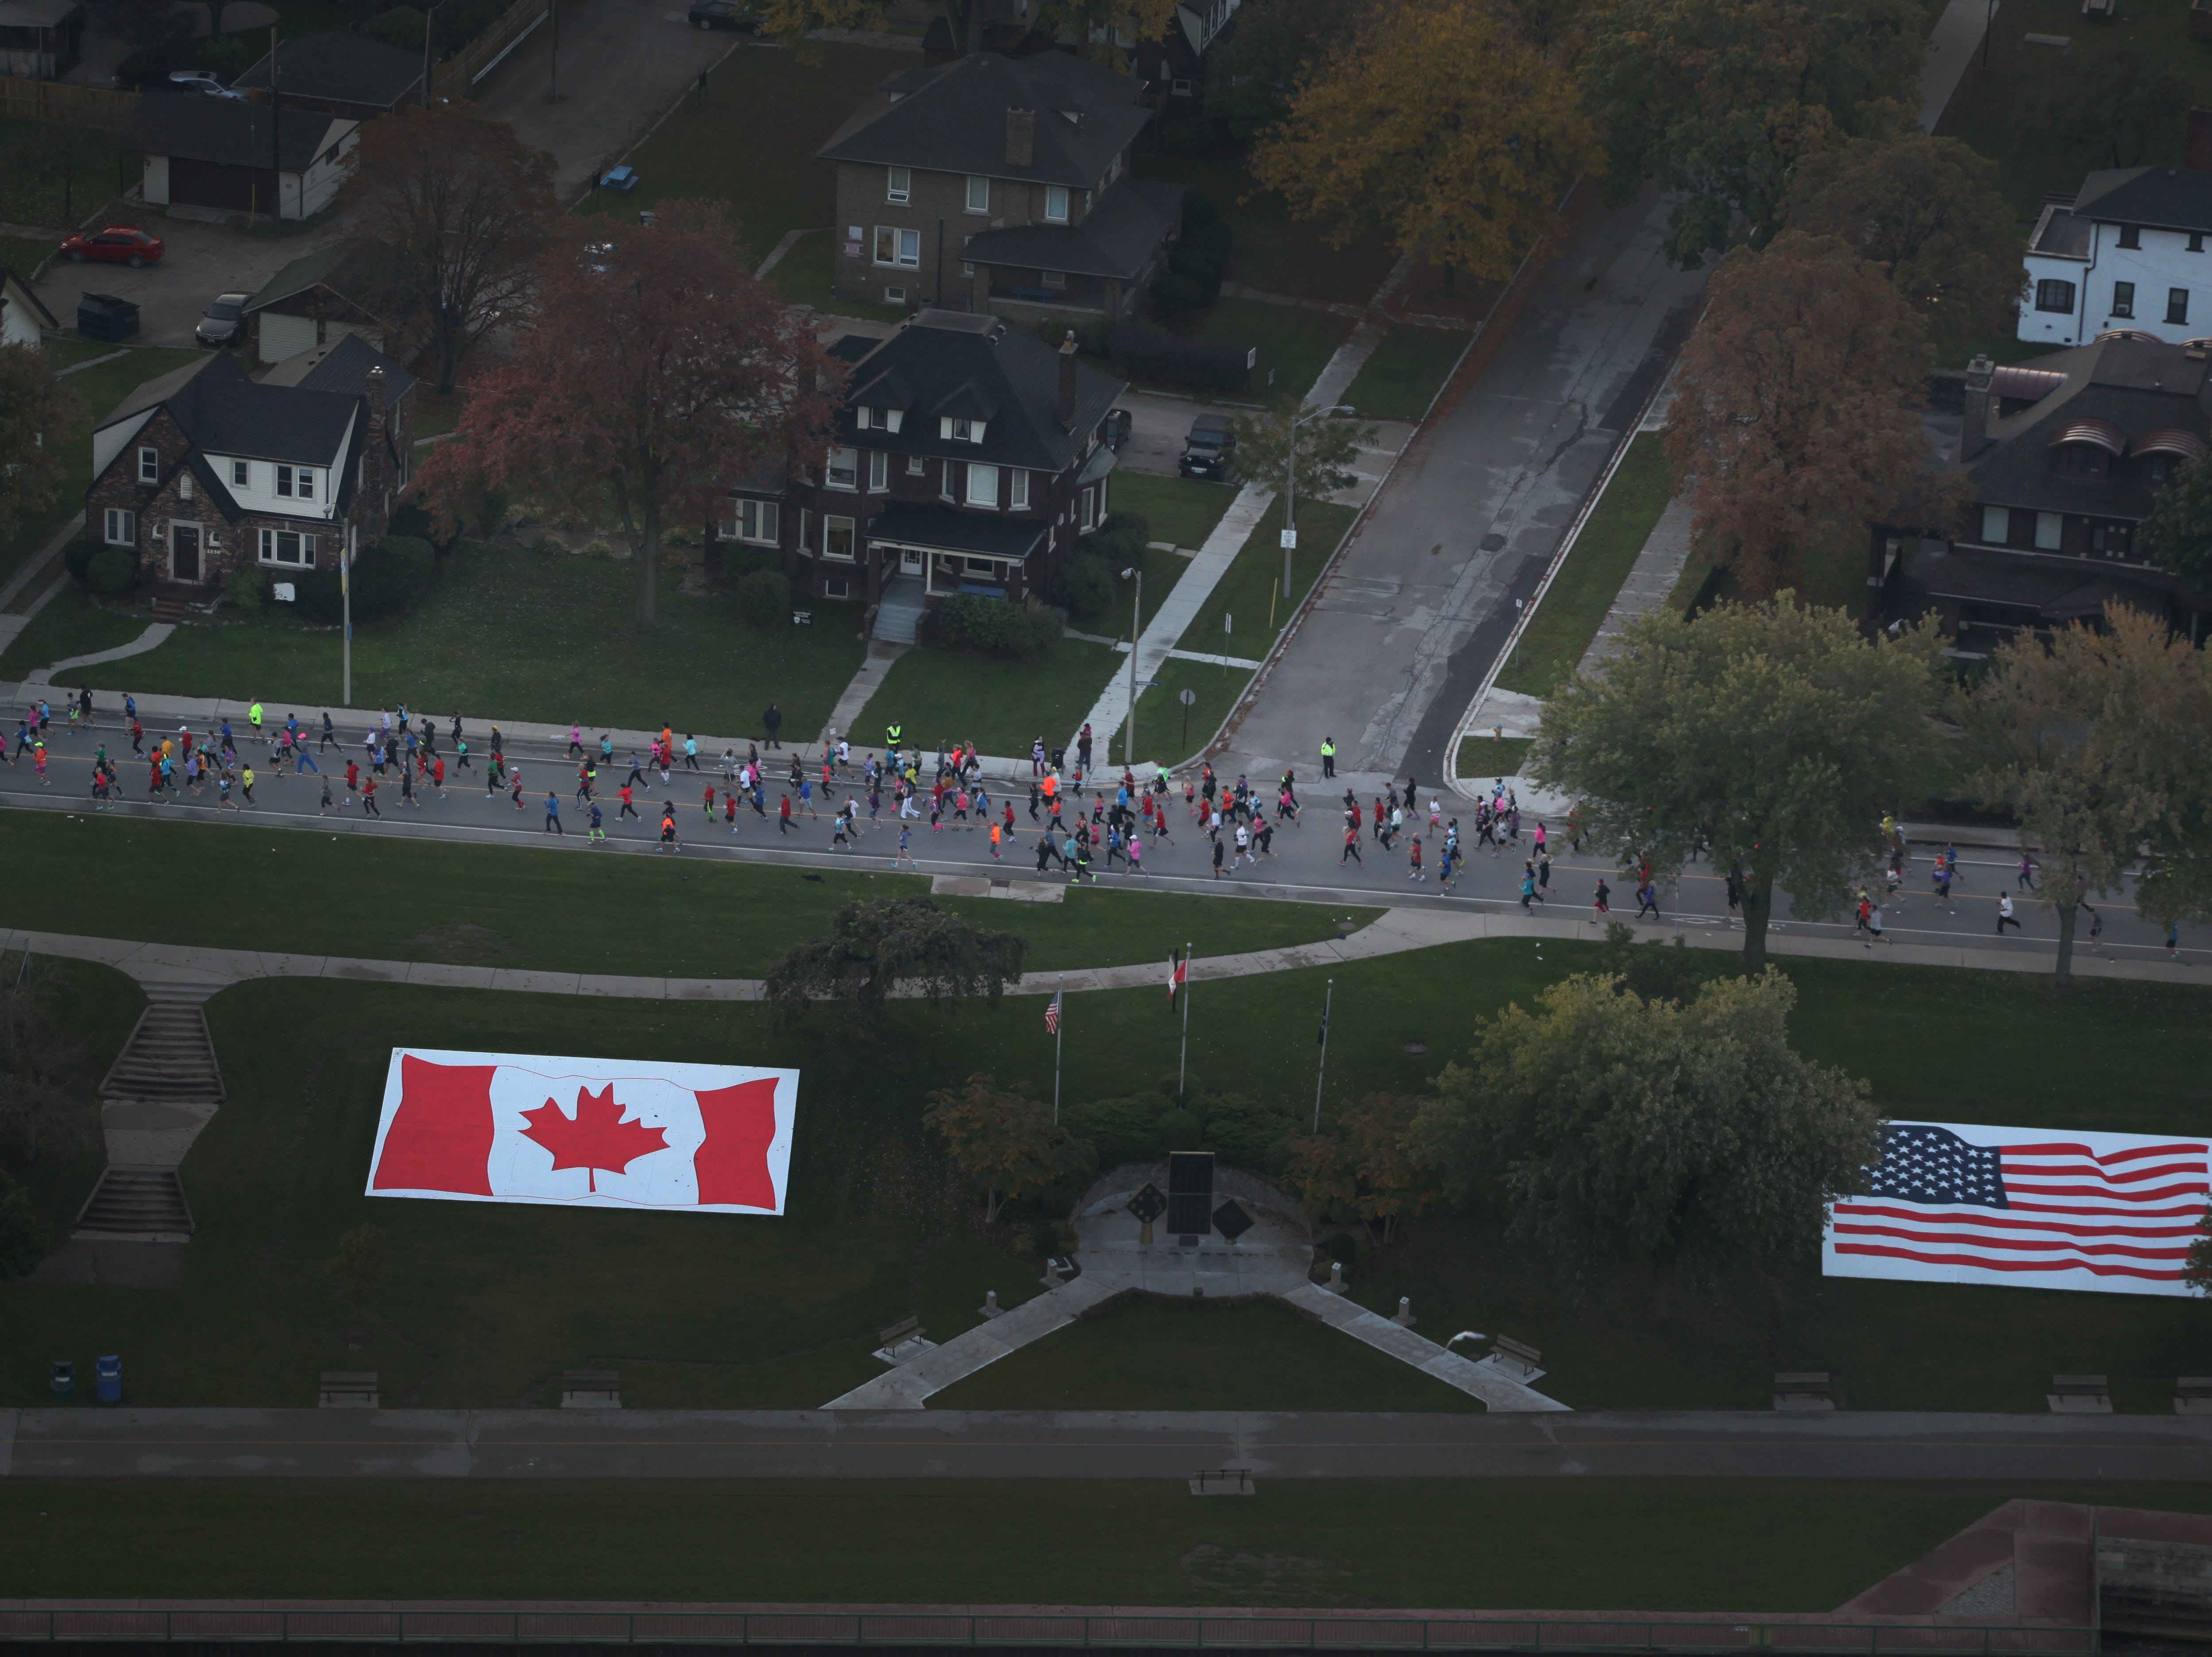 Aerial view of runners along the waterfront in Canada during the 36th Annual Detroit Free Press/Talmer Bank Marathon in Detroit on Sunday, Oct. 20, 2013.